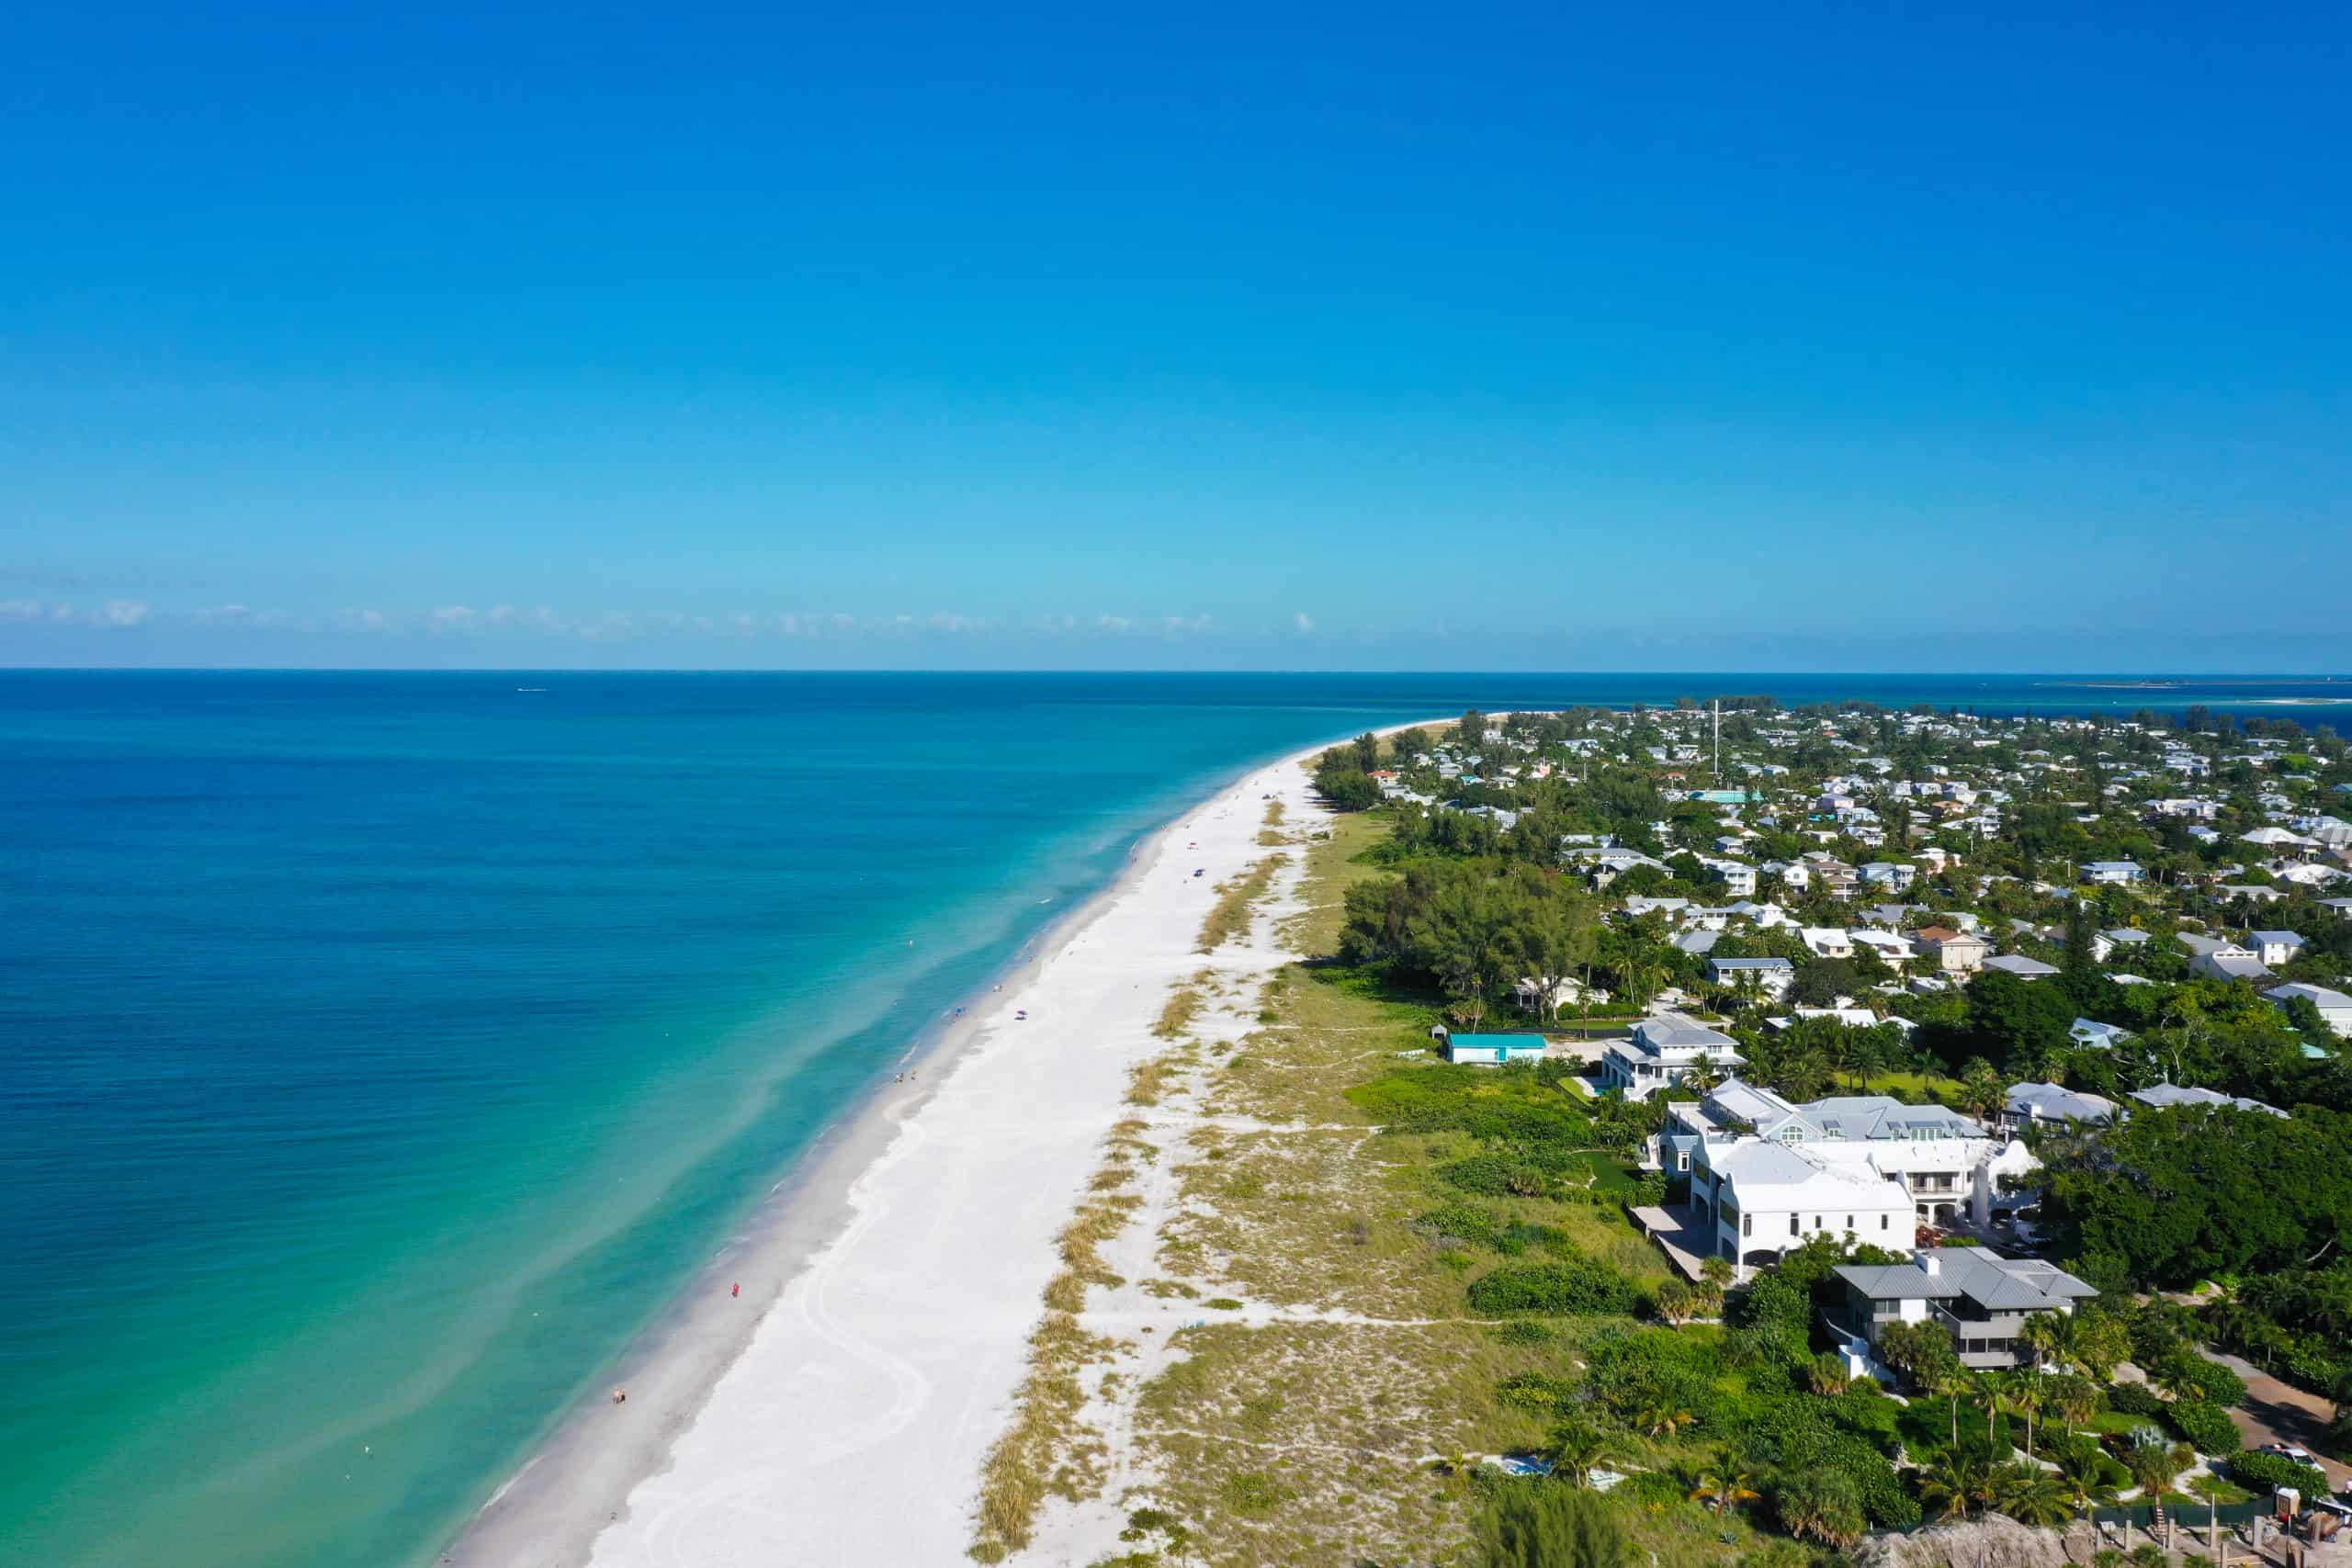 An Aerial View of the Beautiful White Sand Beach on Anna Maria Island, Florida